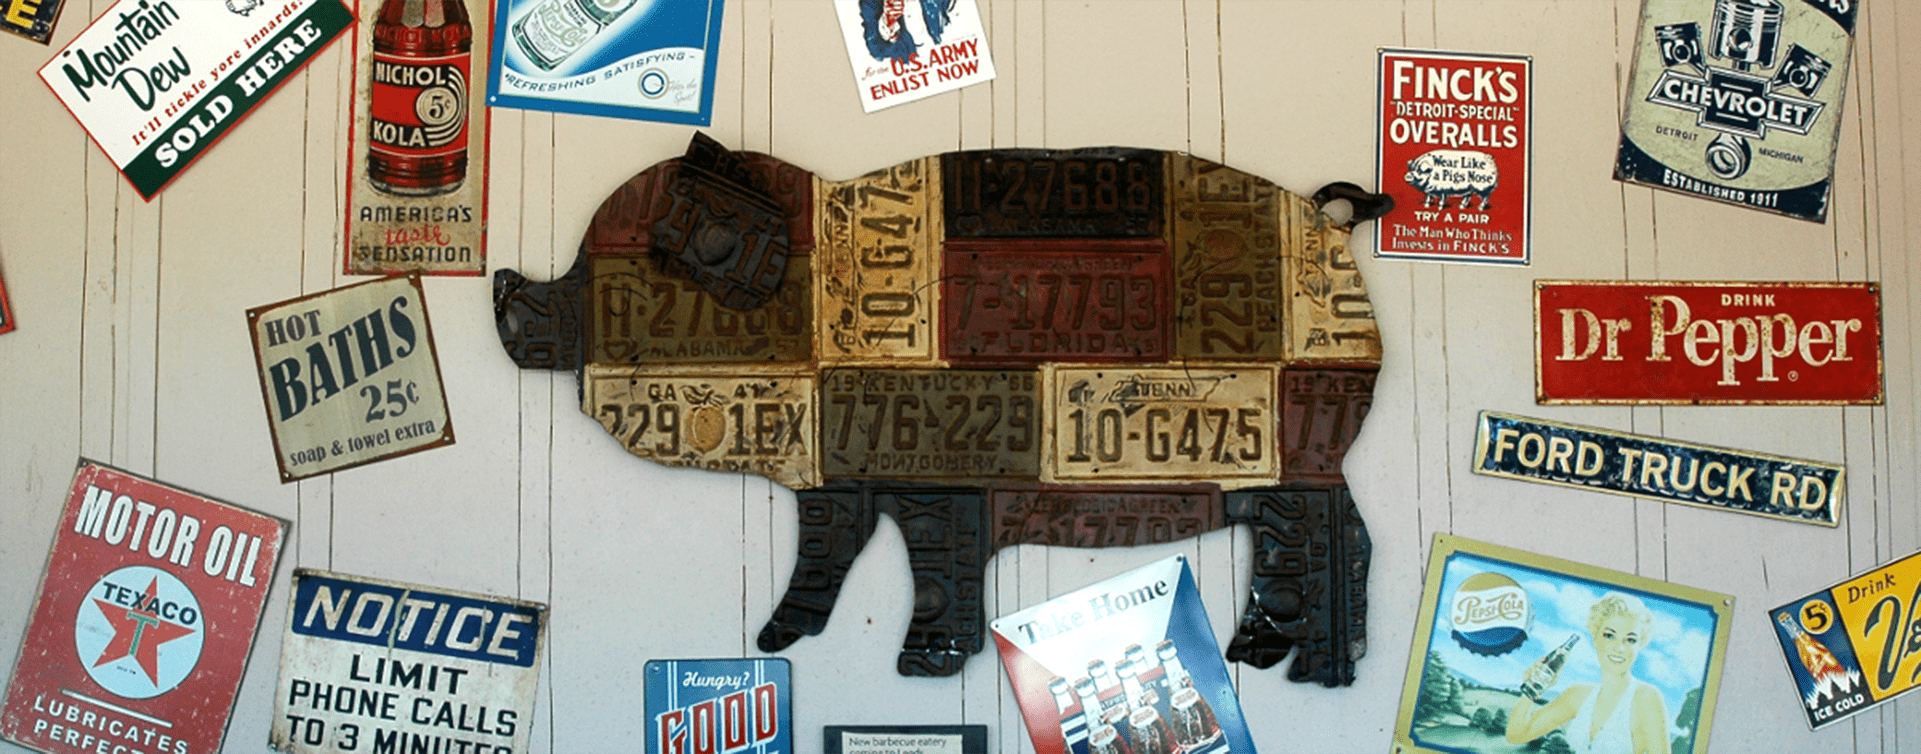 rustys bbq_pig_license_plates